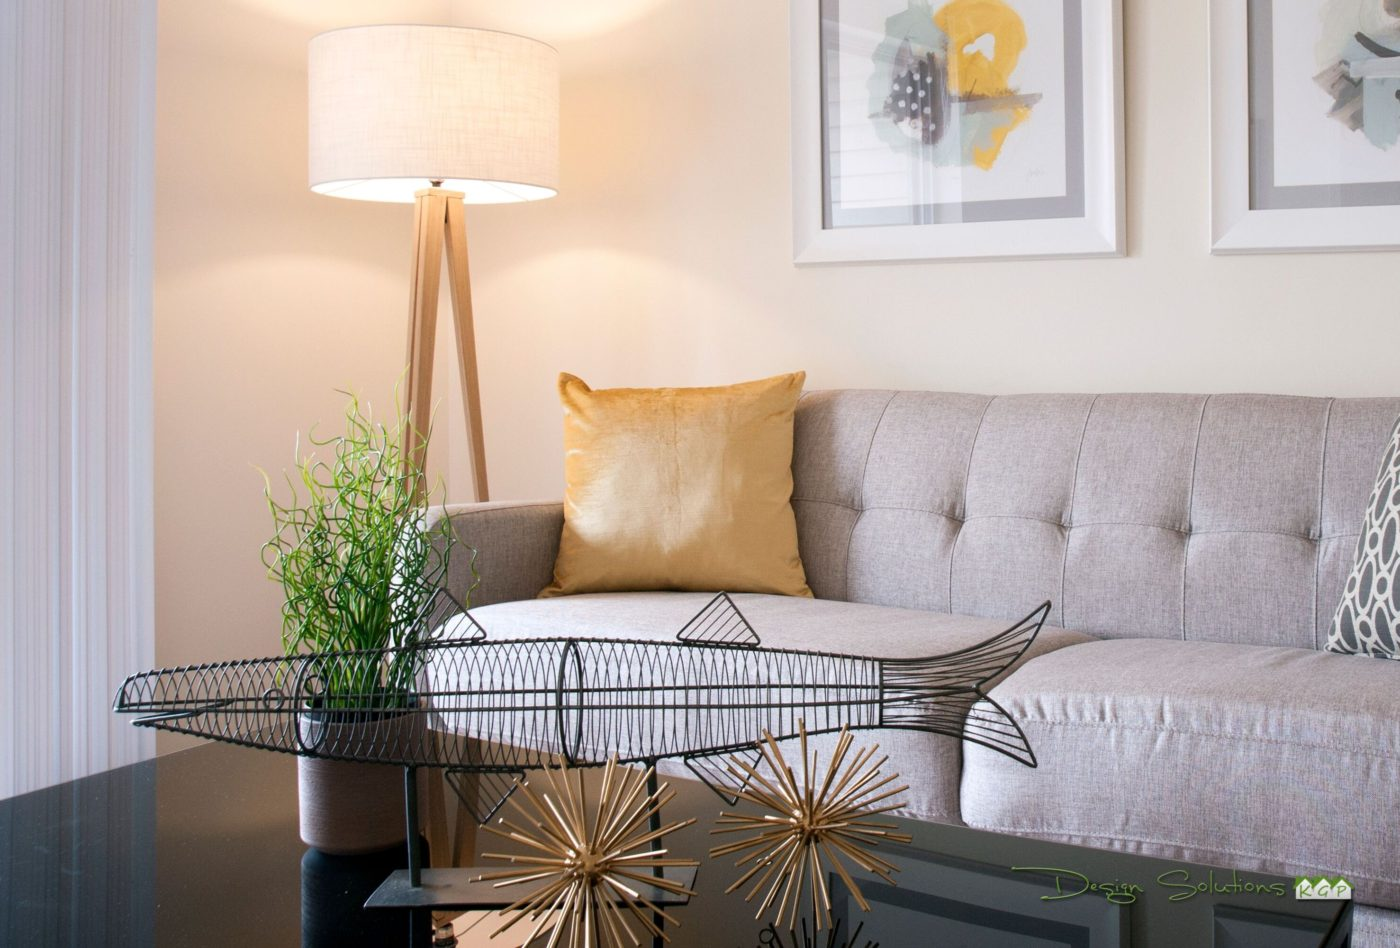 staged home to attract buyers